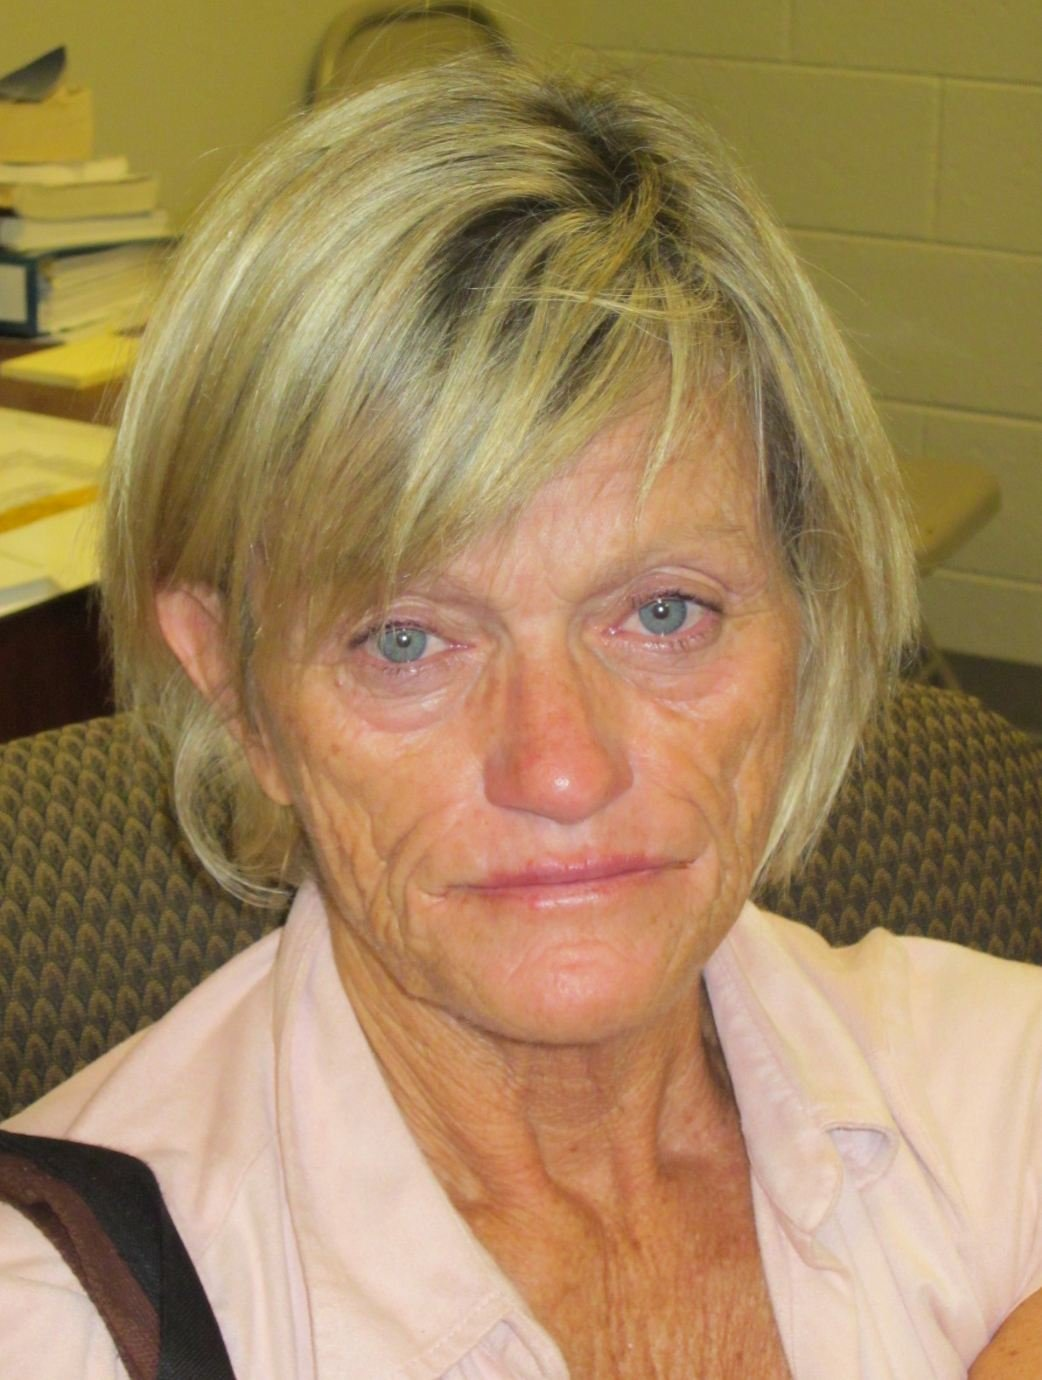 Kathleen Jardine, 57, accused of drinking in class. (Courtesy: PCSO)